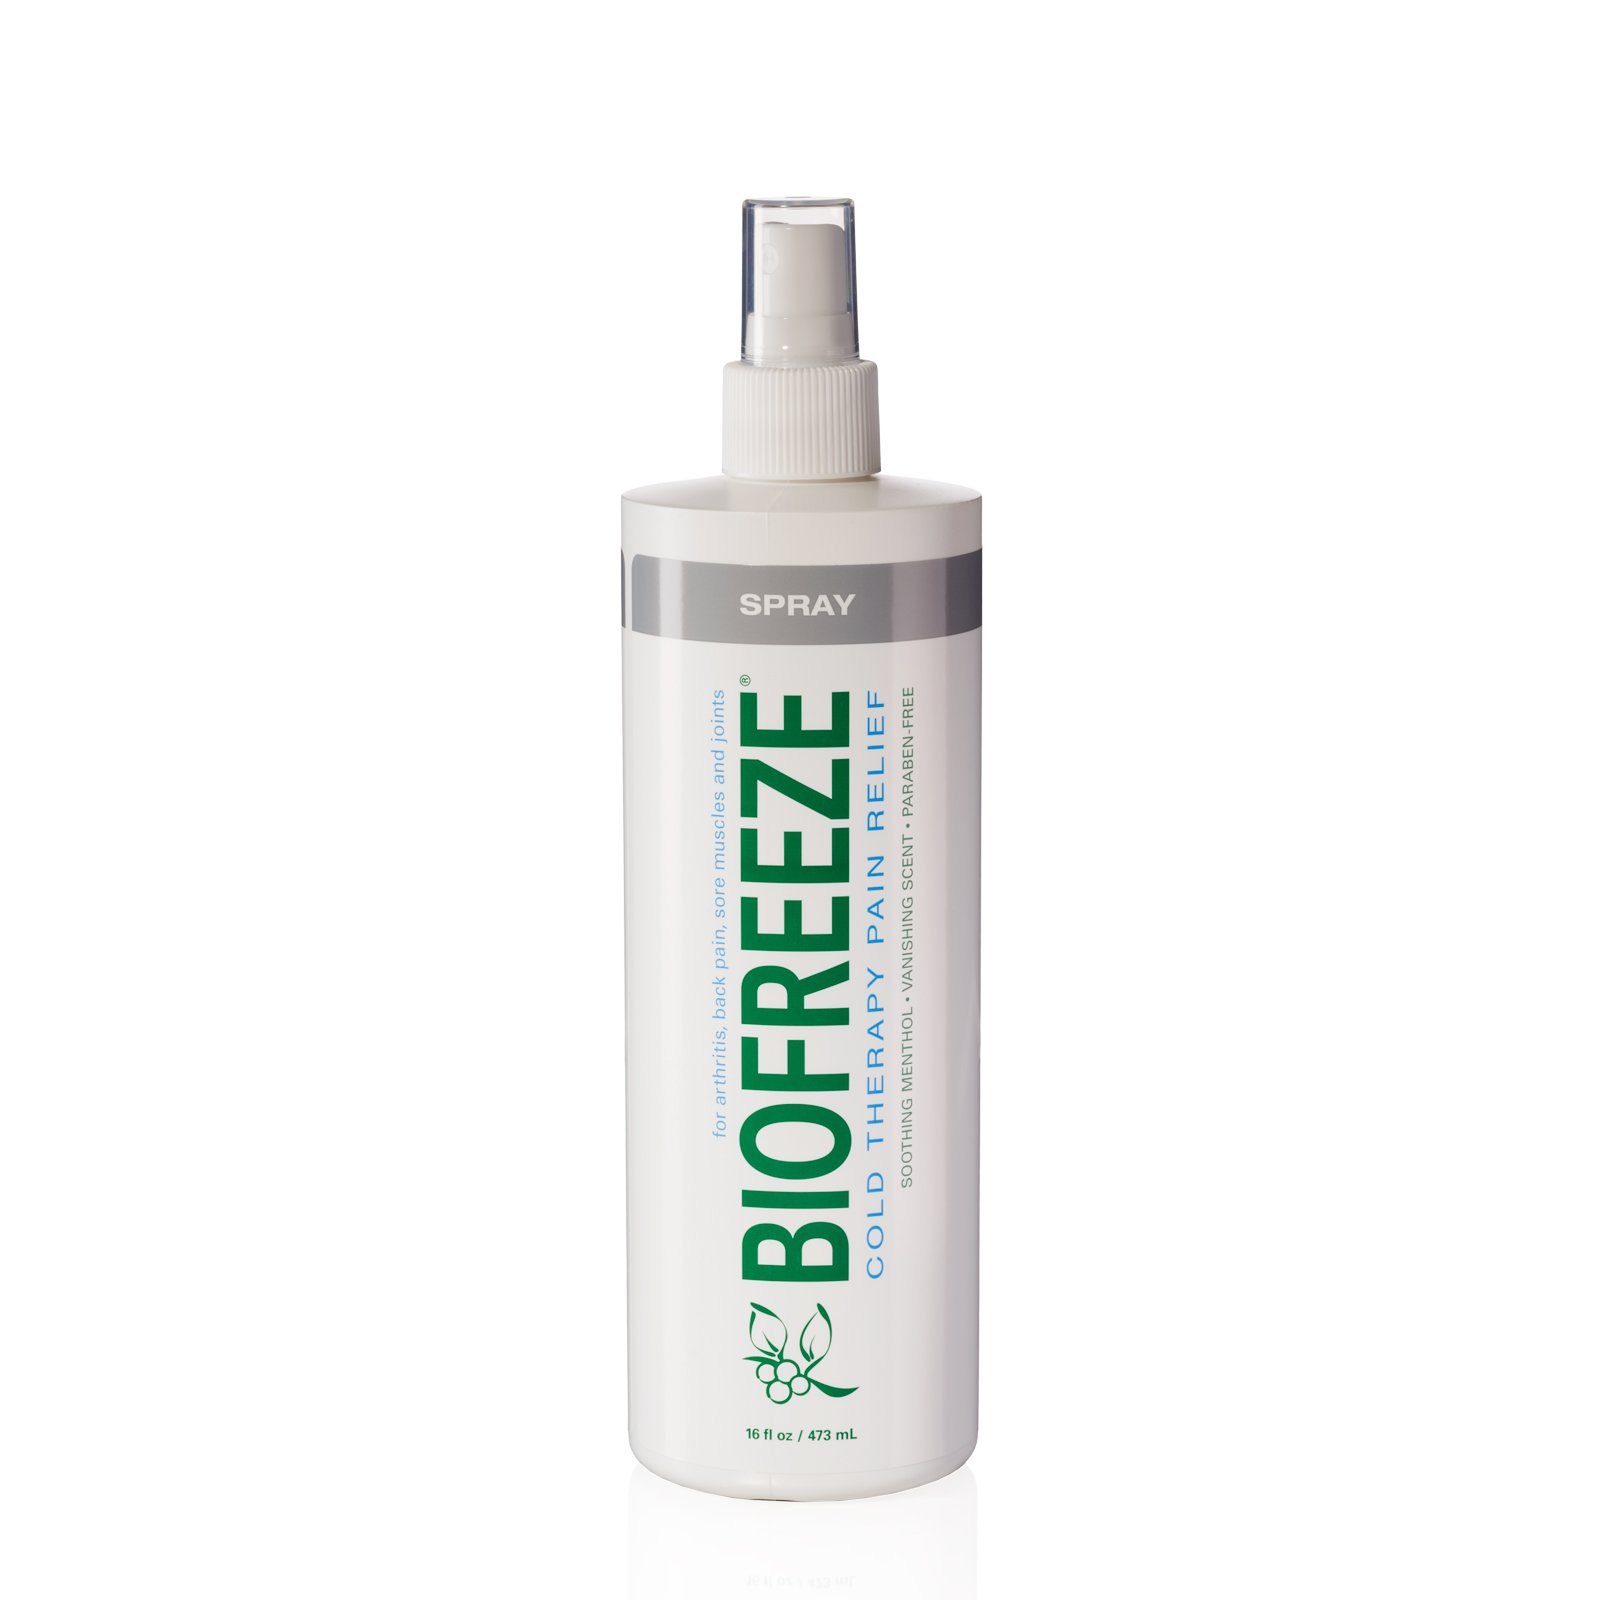 Biofreeze Pain Relief Spray for Arthritis, 16 oz. Bottle with Pump, Fast Acting Cooling Pain Reliever for Muscle, Joint, & Back Pain, Cold Topical Analgesic with Colorless Formula, 10.5% Menthol